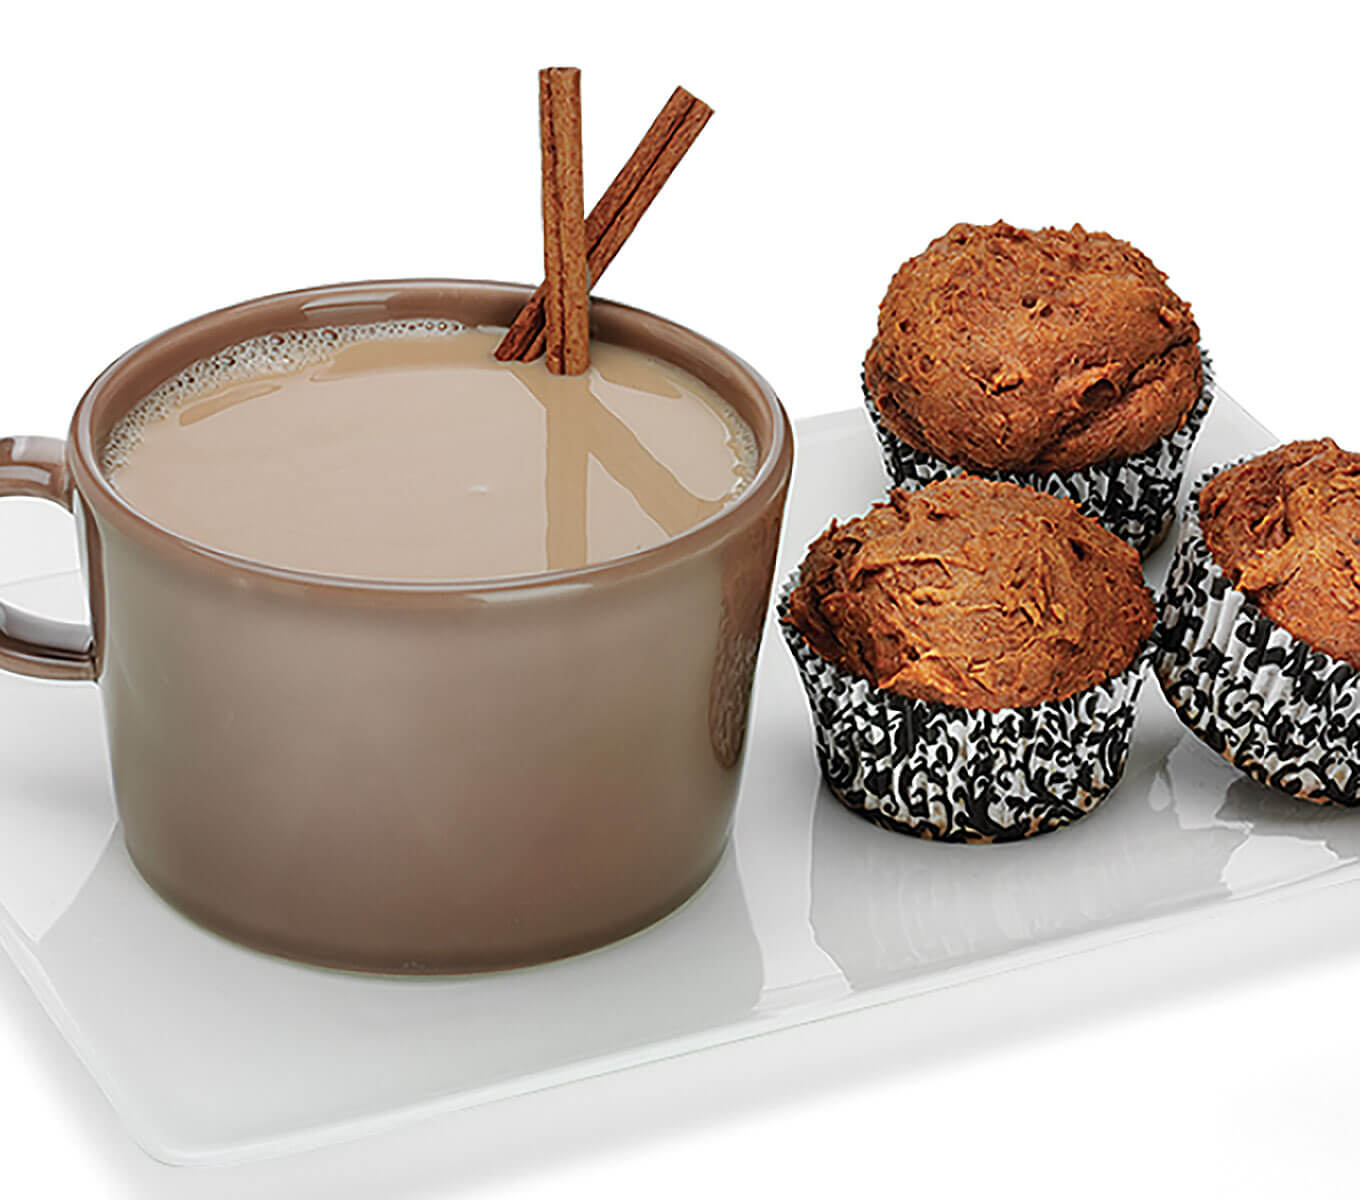 RumChata Pumpkin Spice Muffins, with hot cocoa, cinnamin sticks